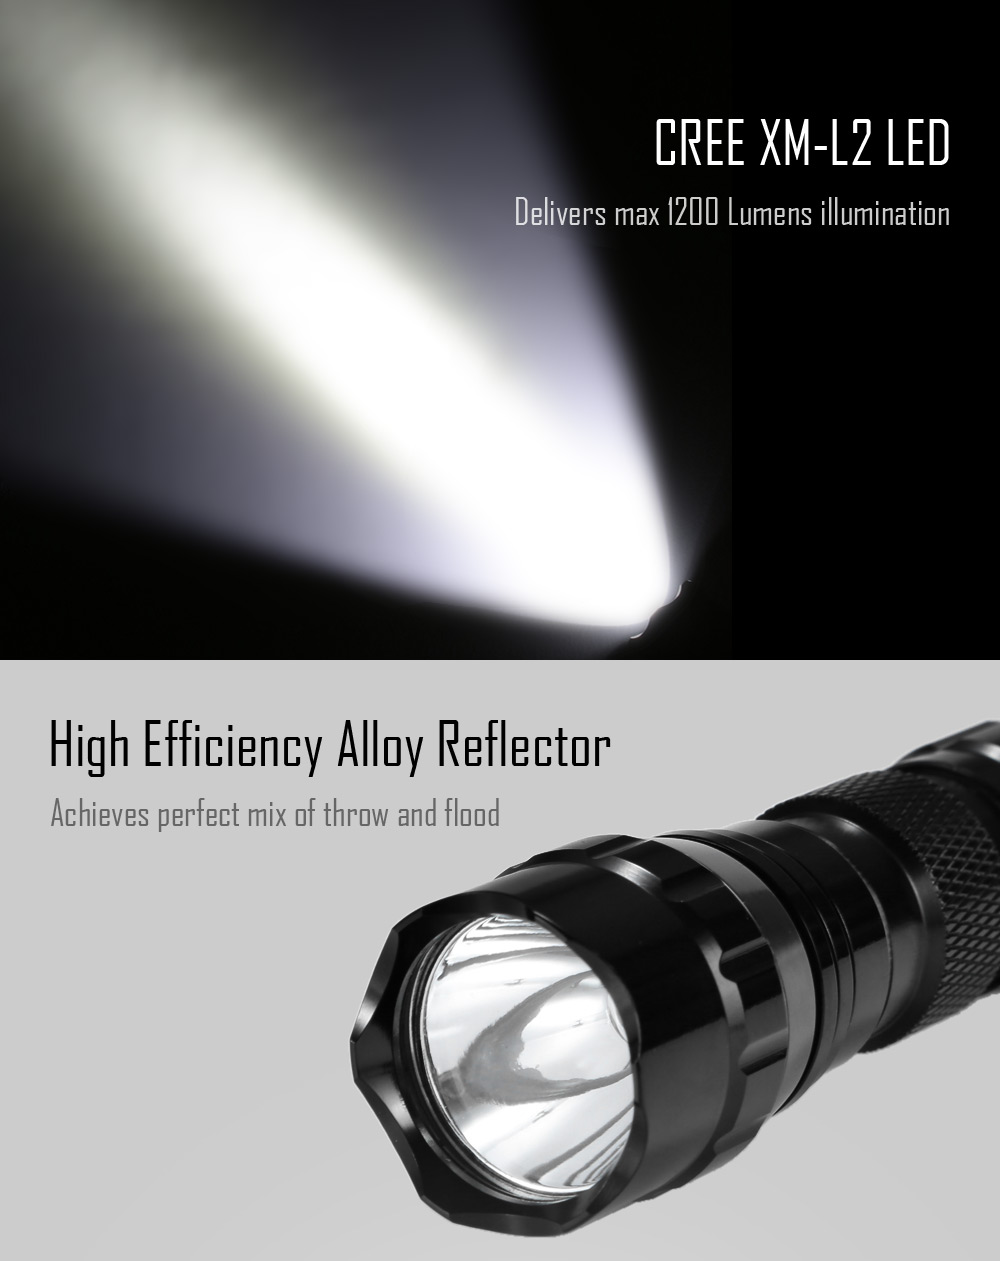 UltraFire WF - 501A CREE XM - L2 1200LM Compact LED Flashlight